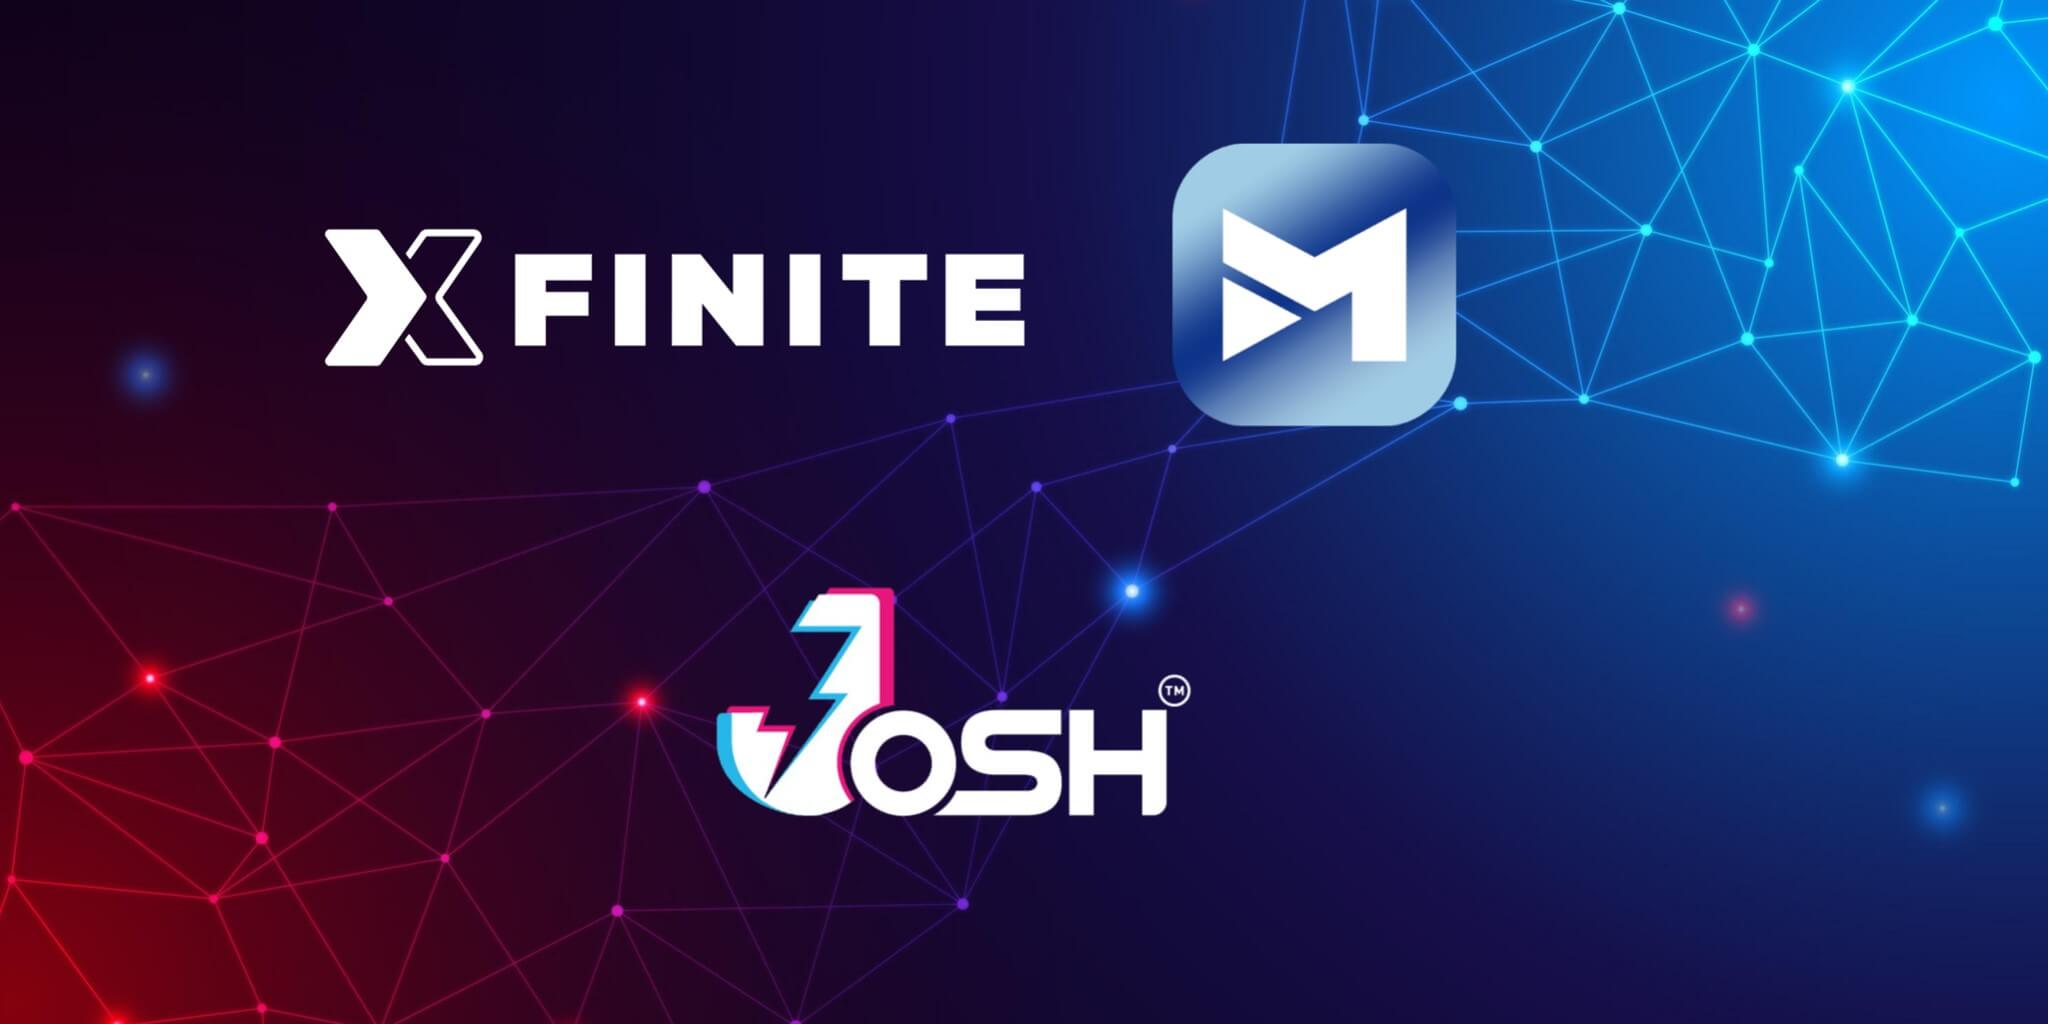 Josh collaborates with Xfinite's dApp Mzaalo to enhance content engagement for its users